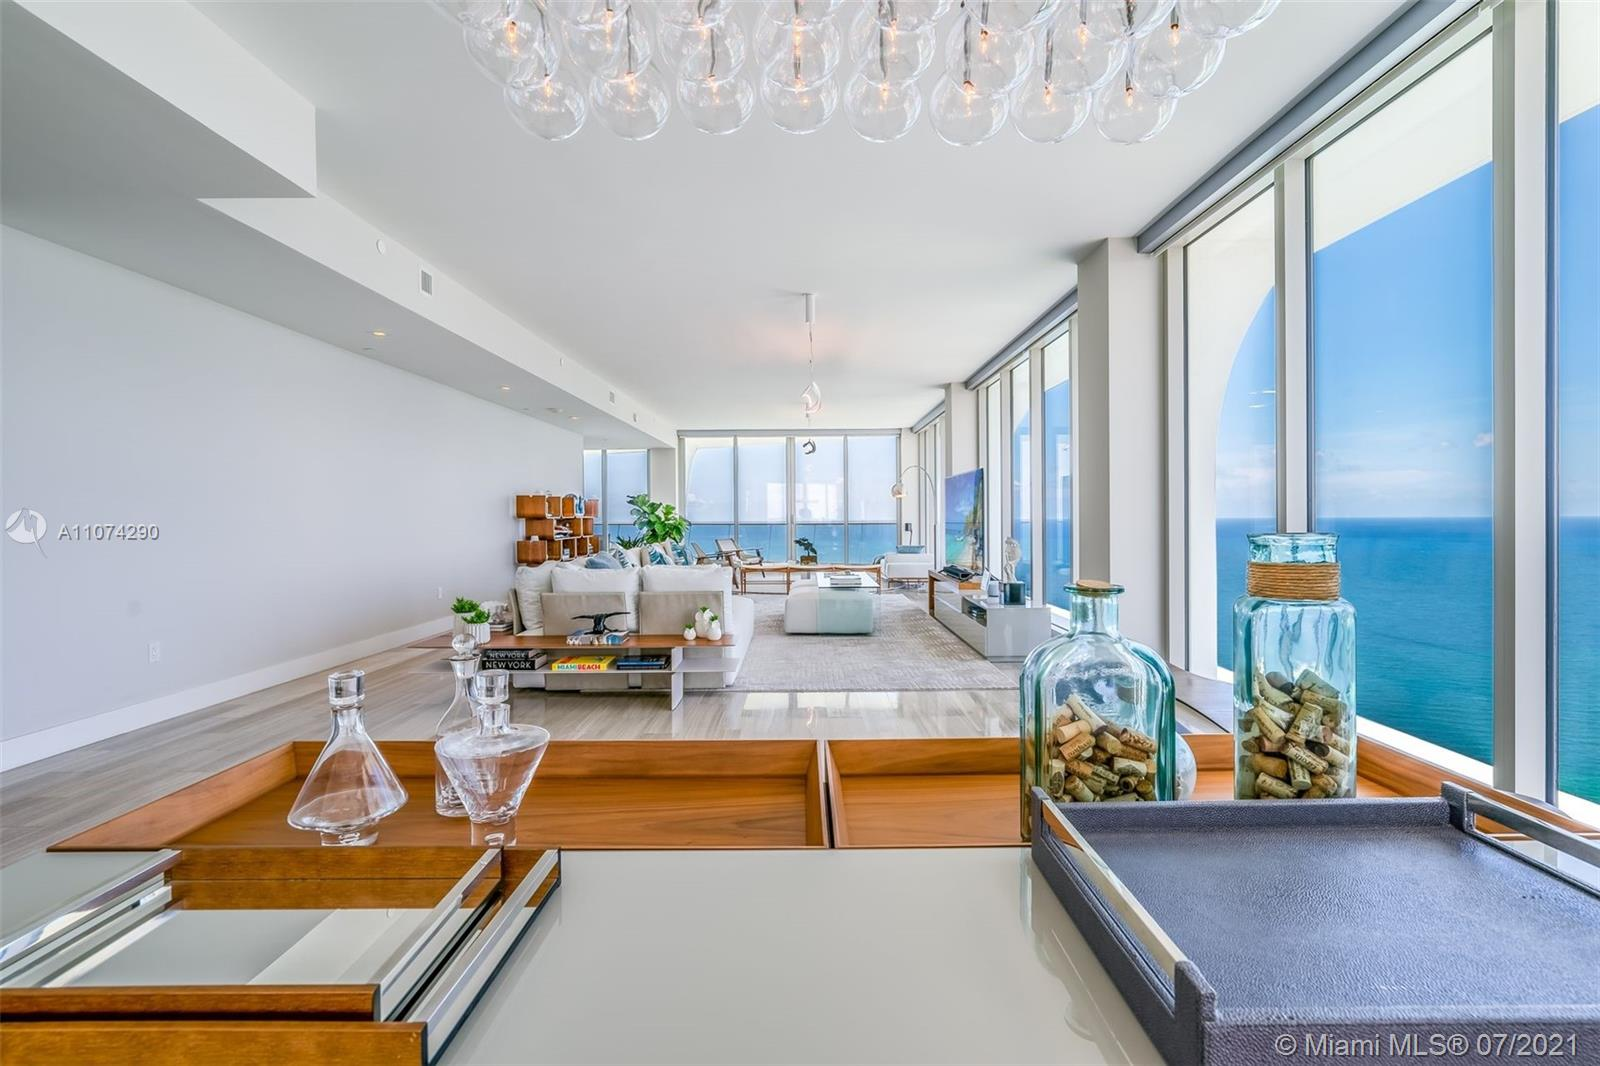 16901 Collins Ave, Unit #3601 Luxury Real Estate